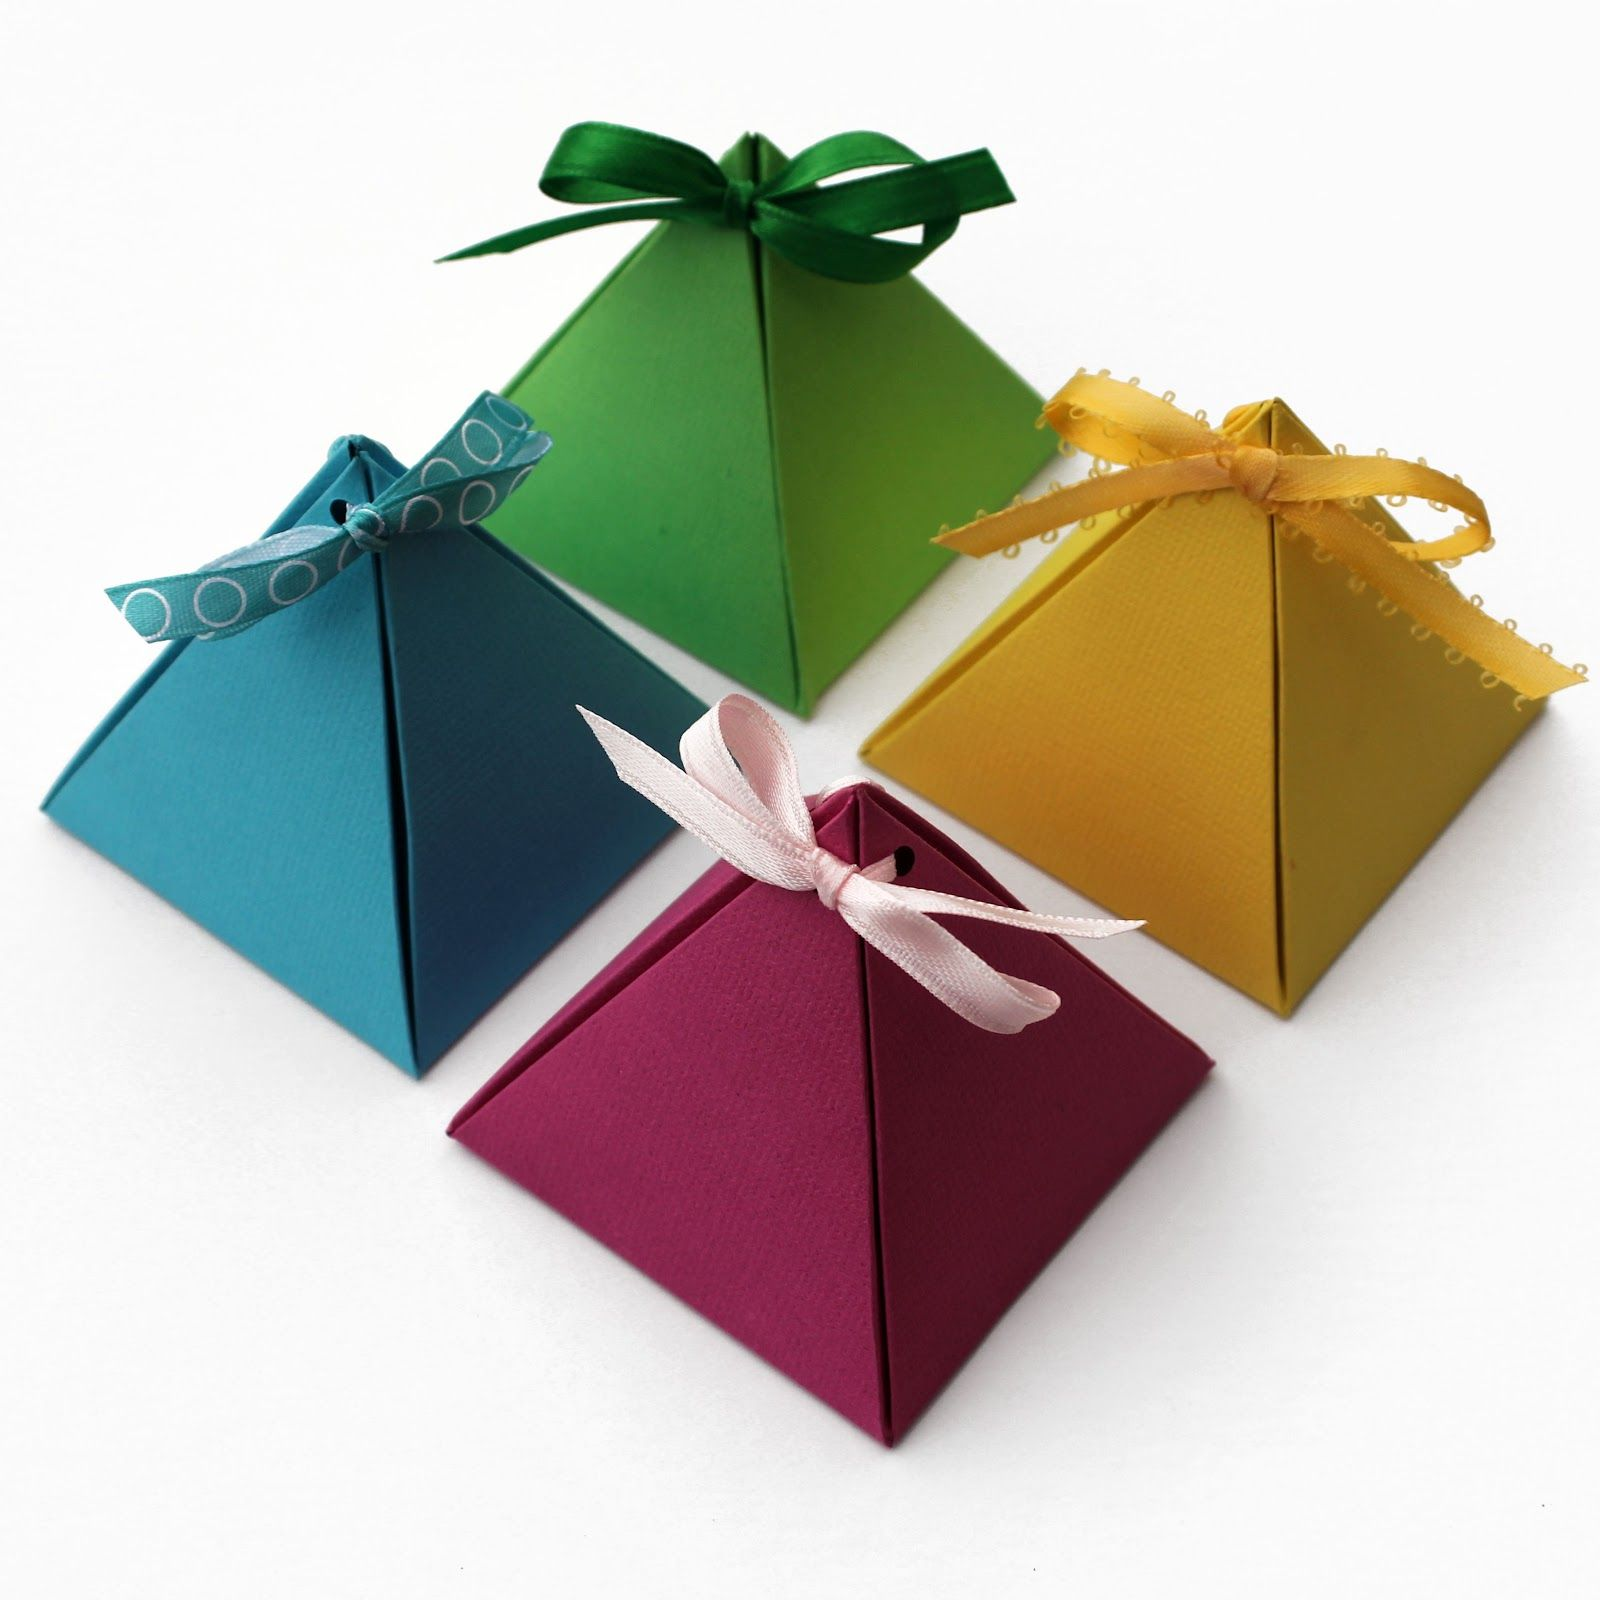 Paper pyramid gift box tutorial complete with template download ...